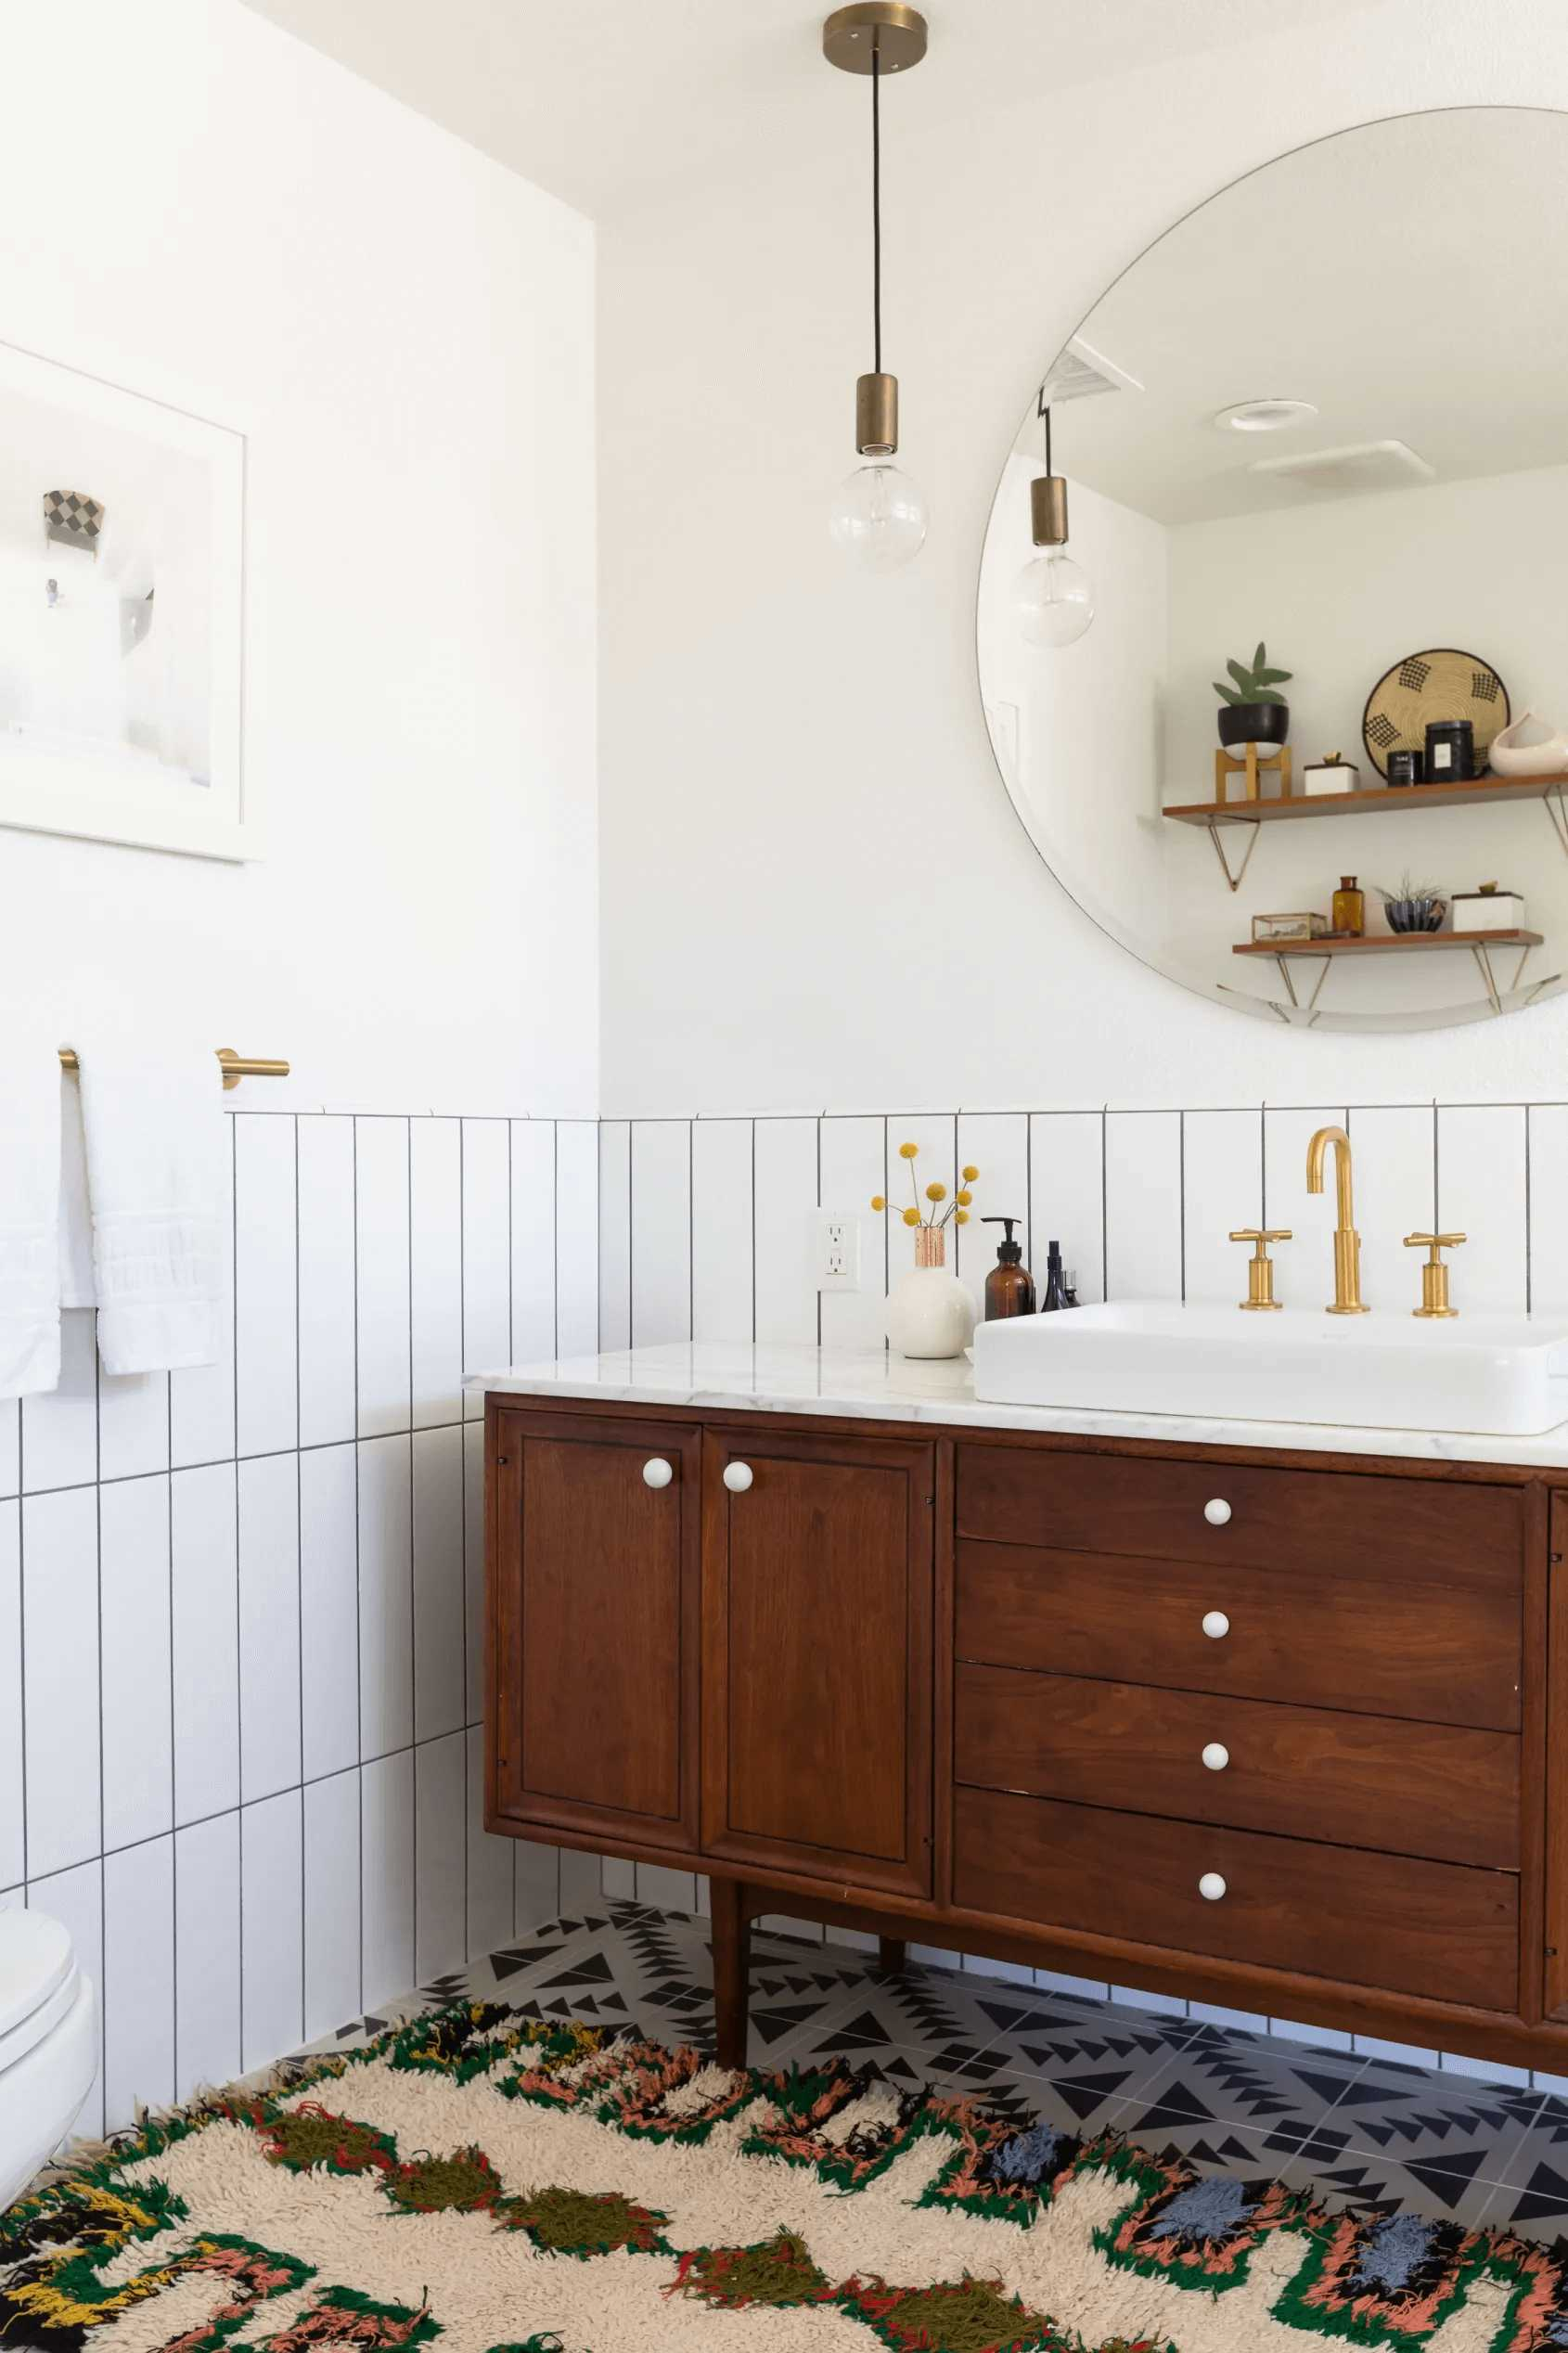 this-is-a-Vanity-Cabinet-in-a-bathroom-a-classic-mid-century-modern-bathroom